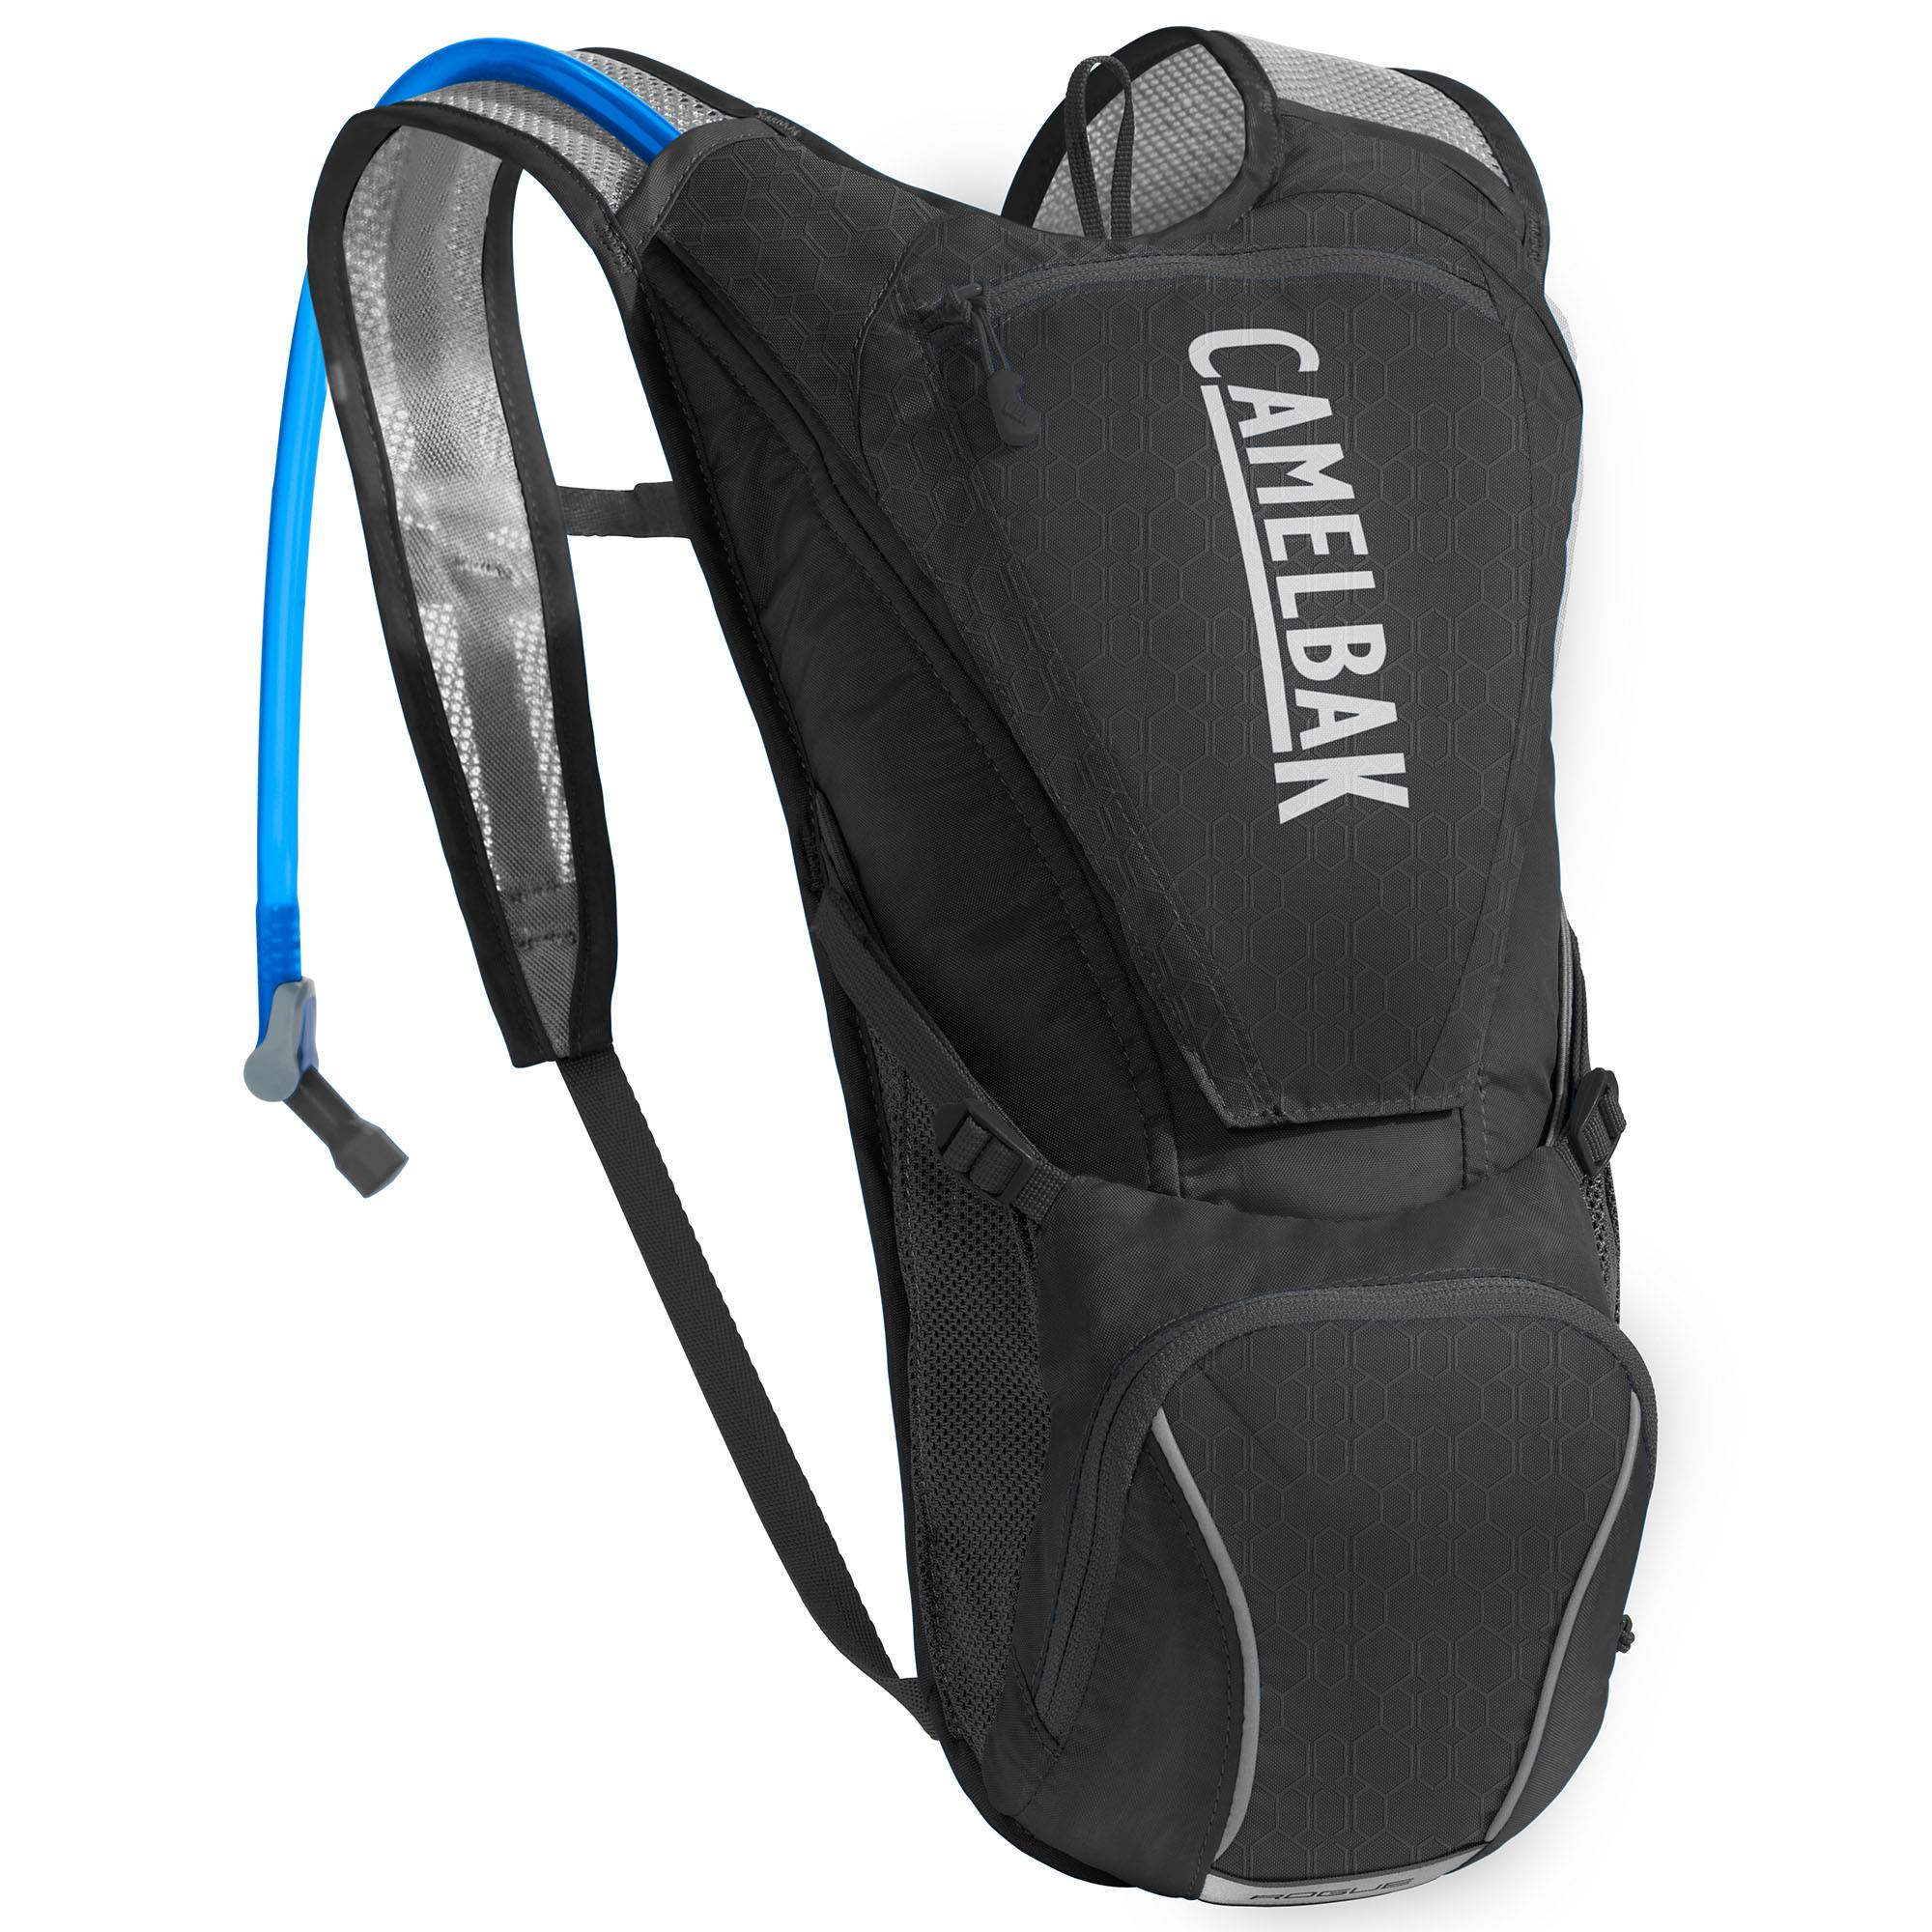 Camelbak Rogue 85 Oz Hydration Pack  - Racing Red/Silver - Size: One Size